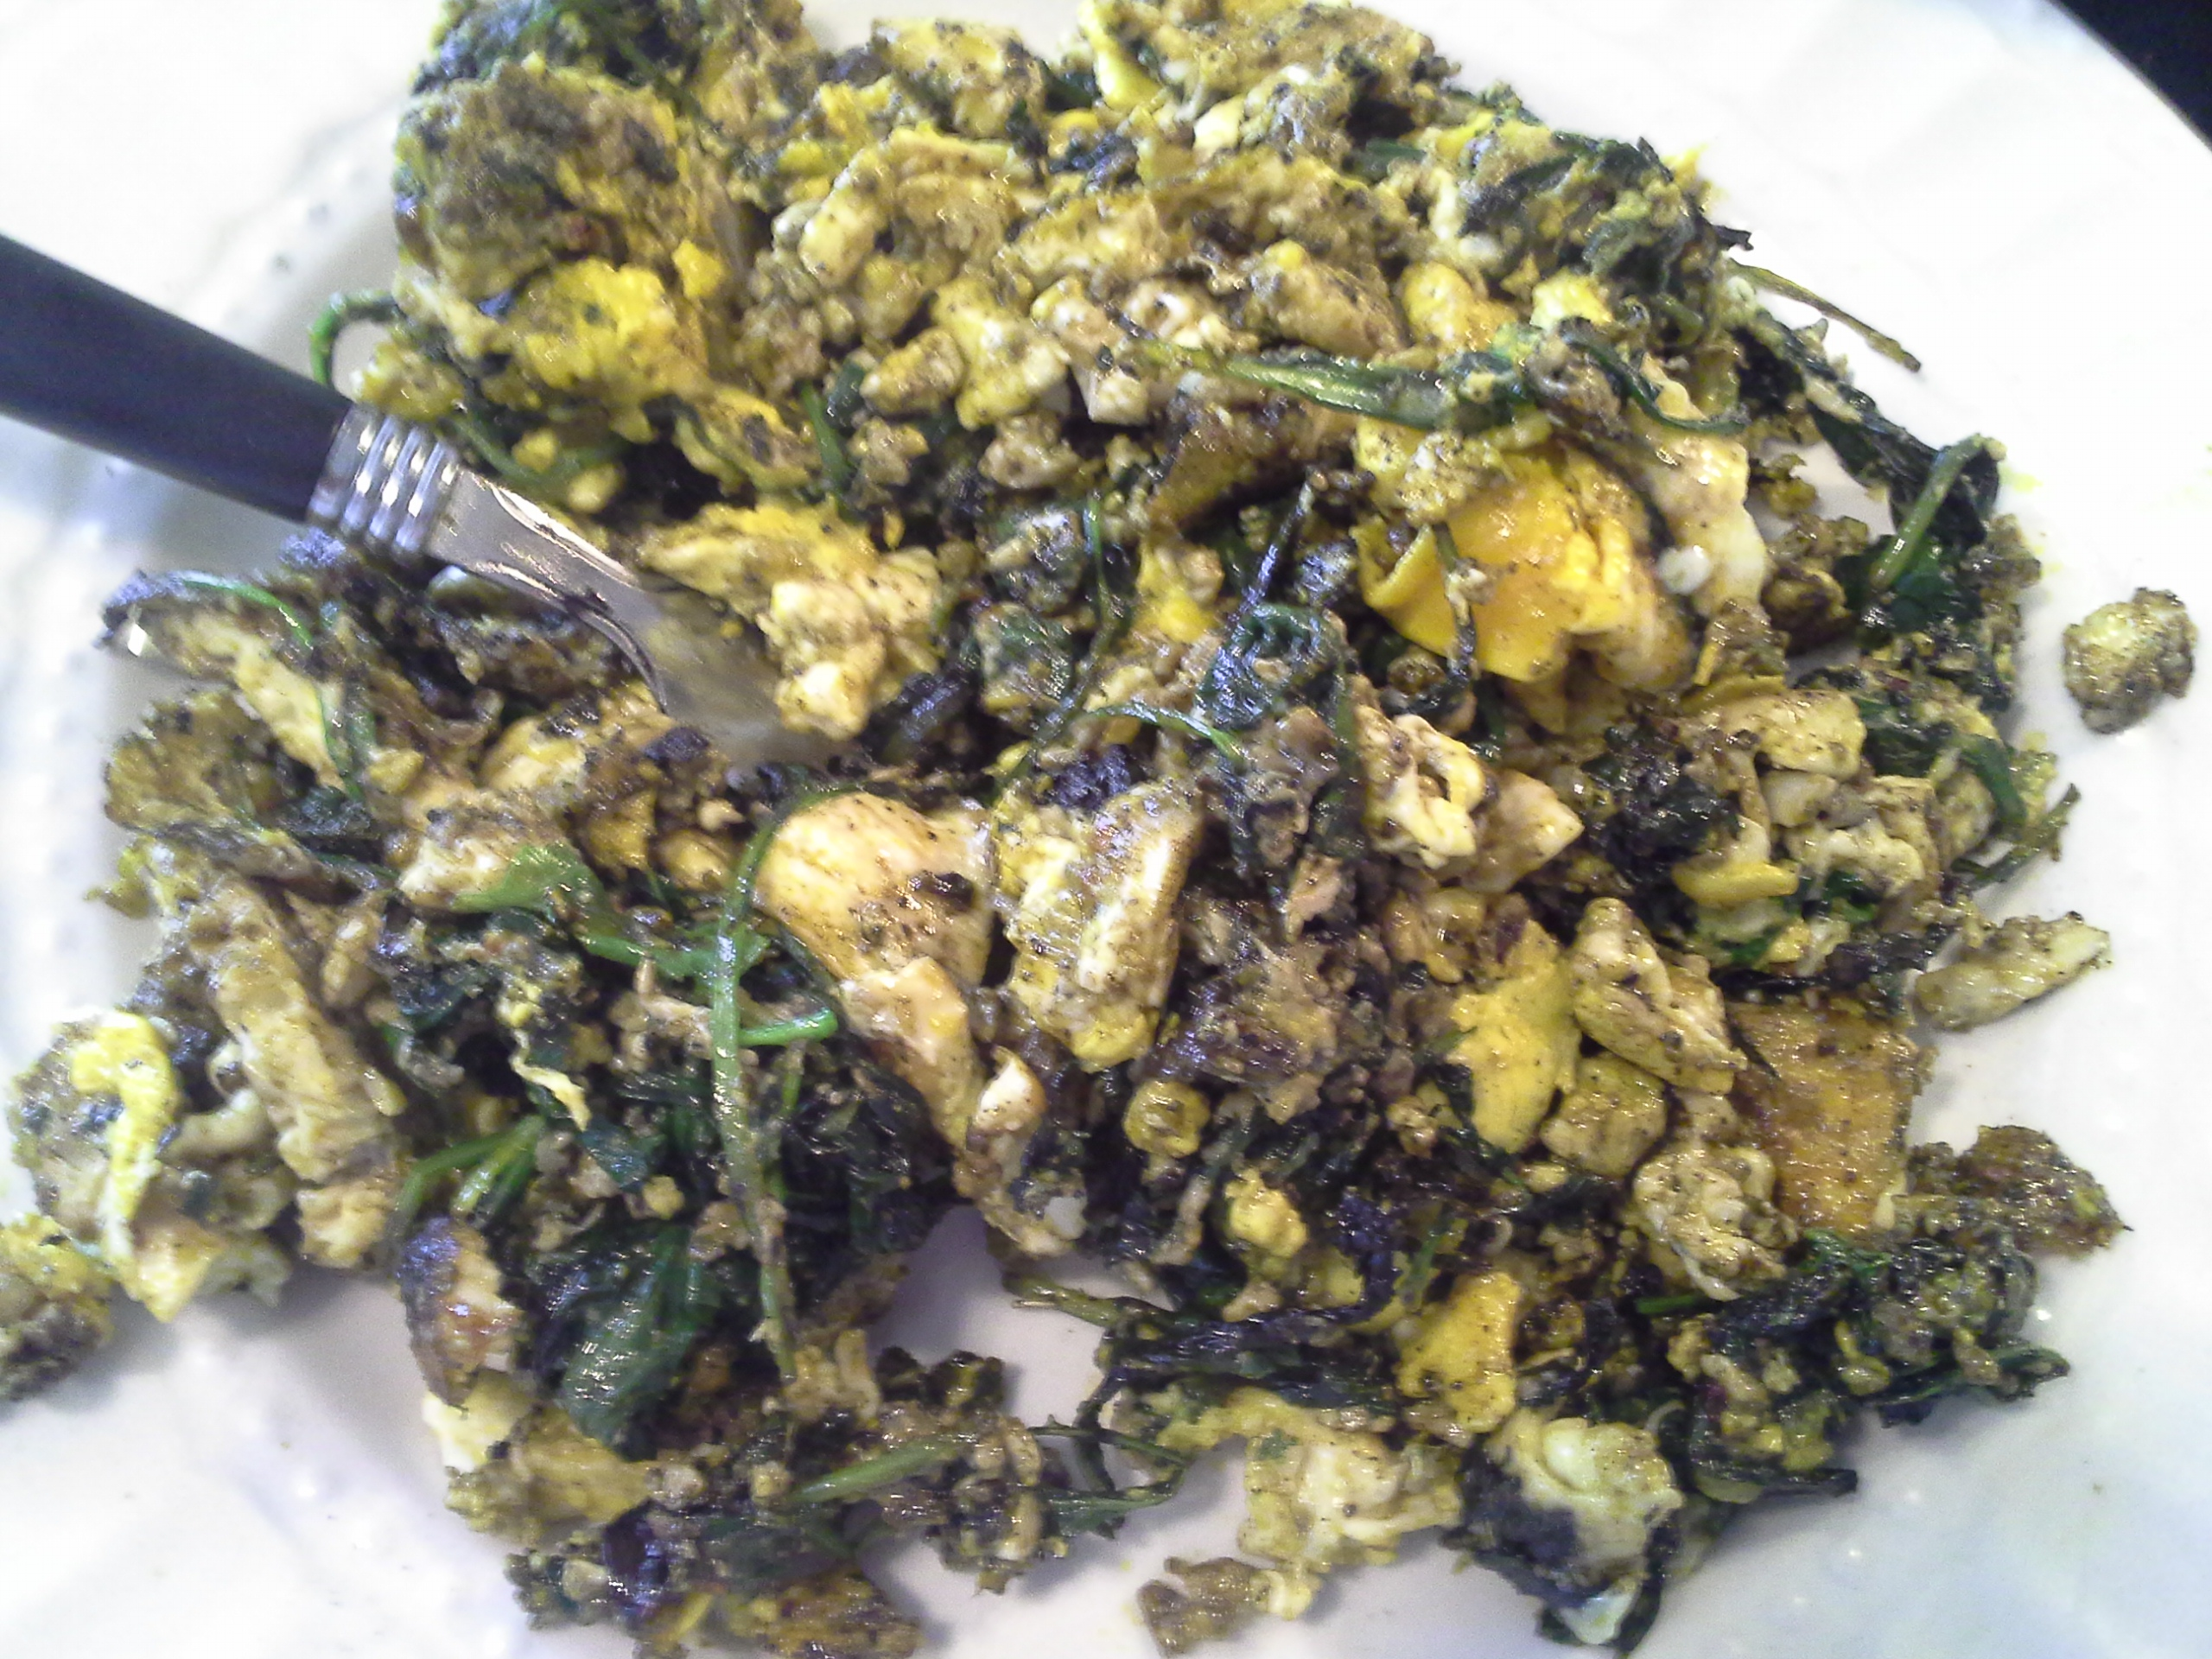 Breakfast: 11:40 a.m. | 4 eggs, greens mix, 2 Tbsp. red palm oil, herbs & spices